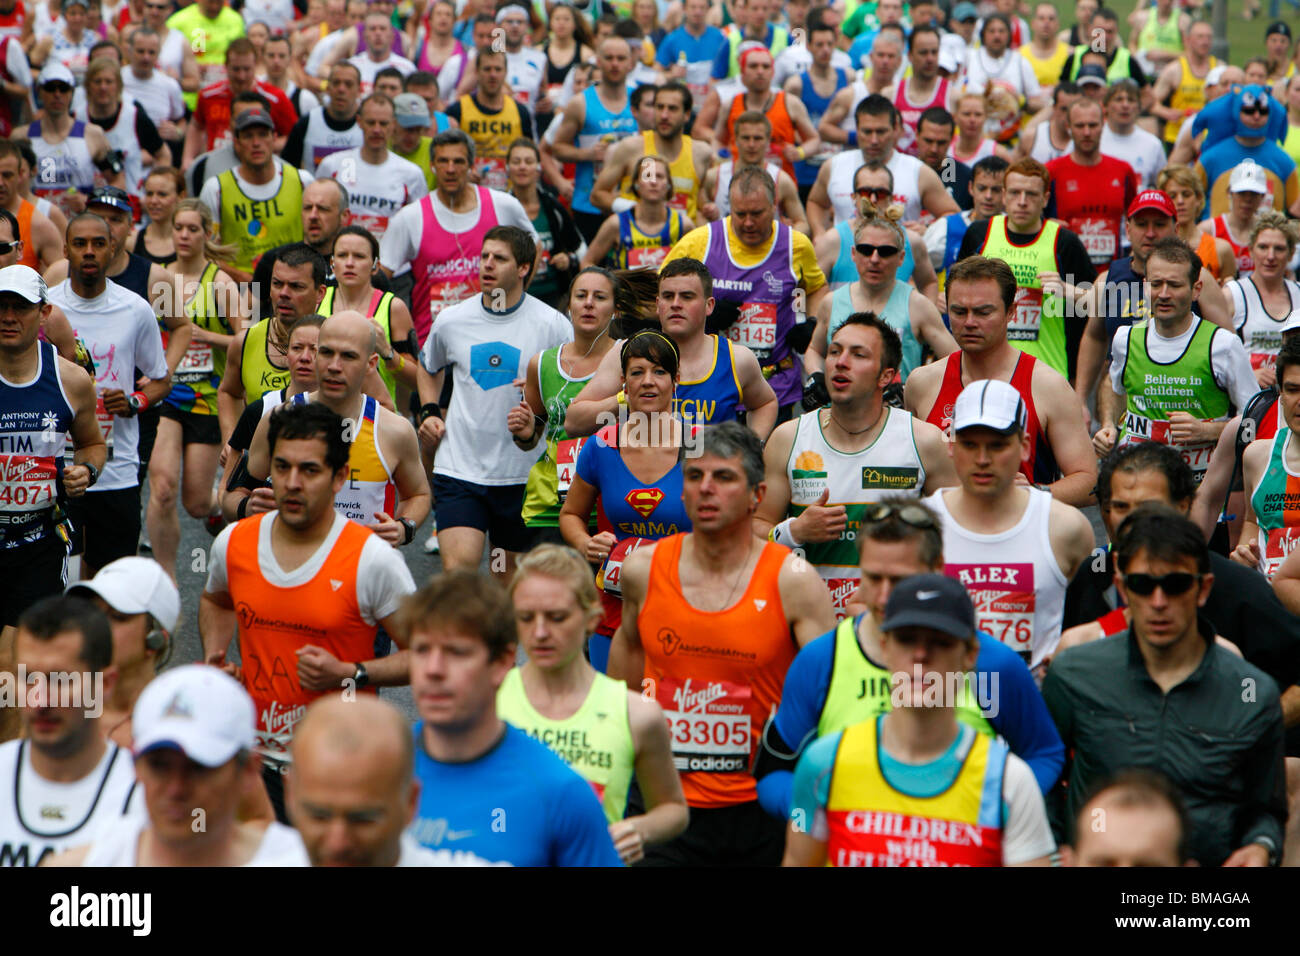 London-Marathon-Läufer entlang Charlton Weg, Blackheath, London, UK Stockbild